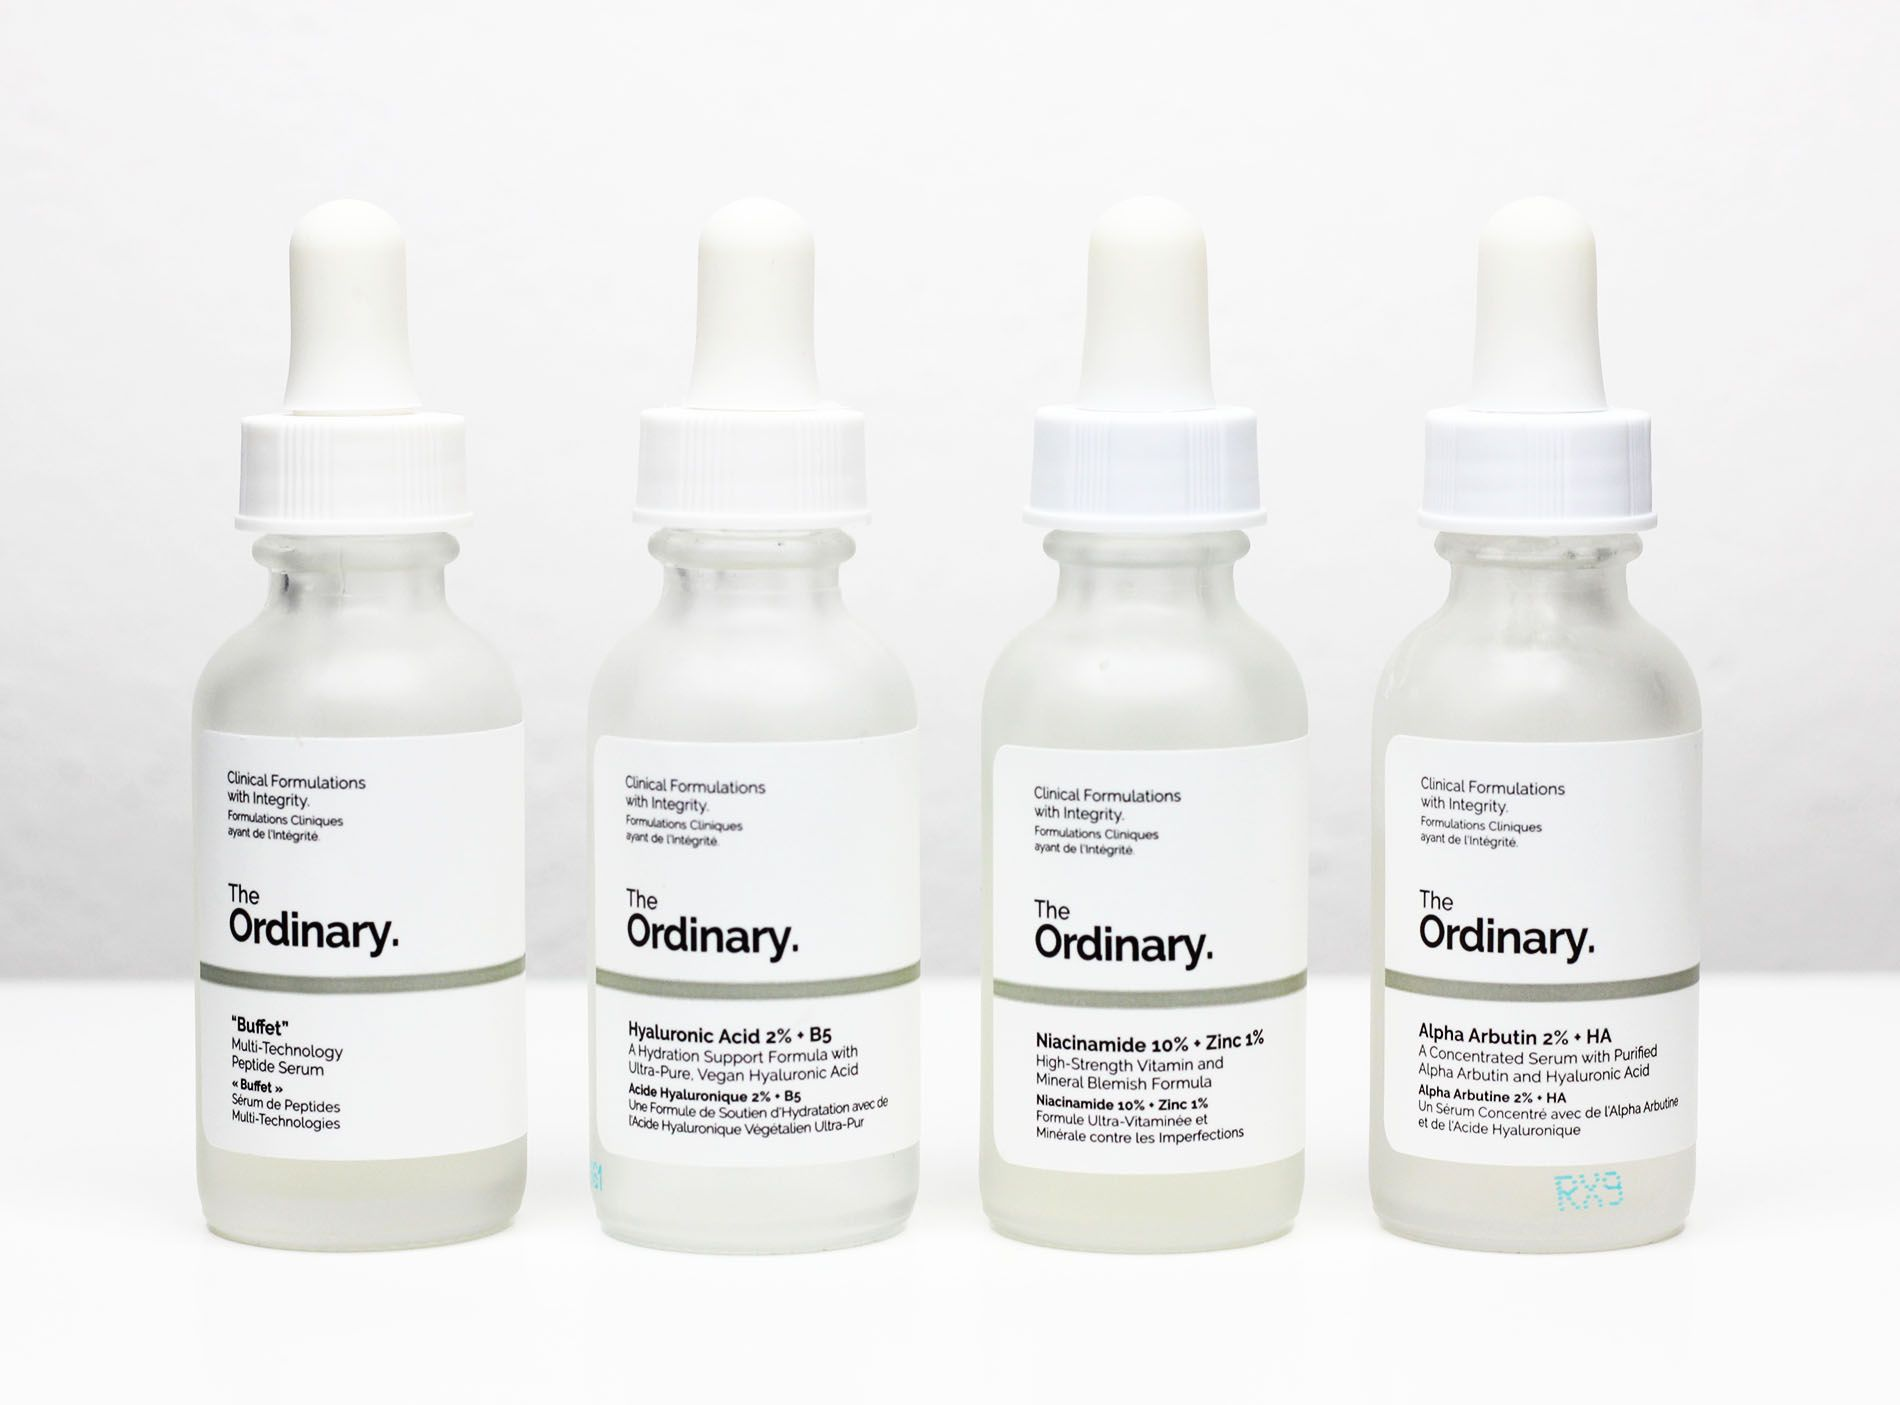 The Ordinary Skincare Range Is Really Rather Revolutionary